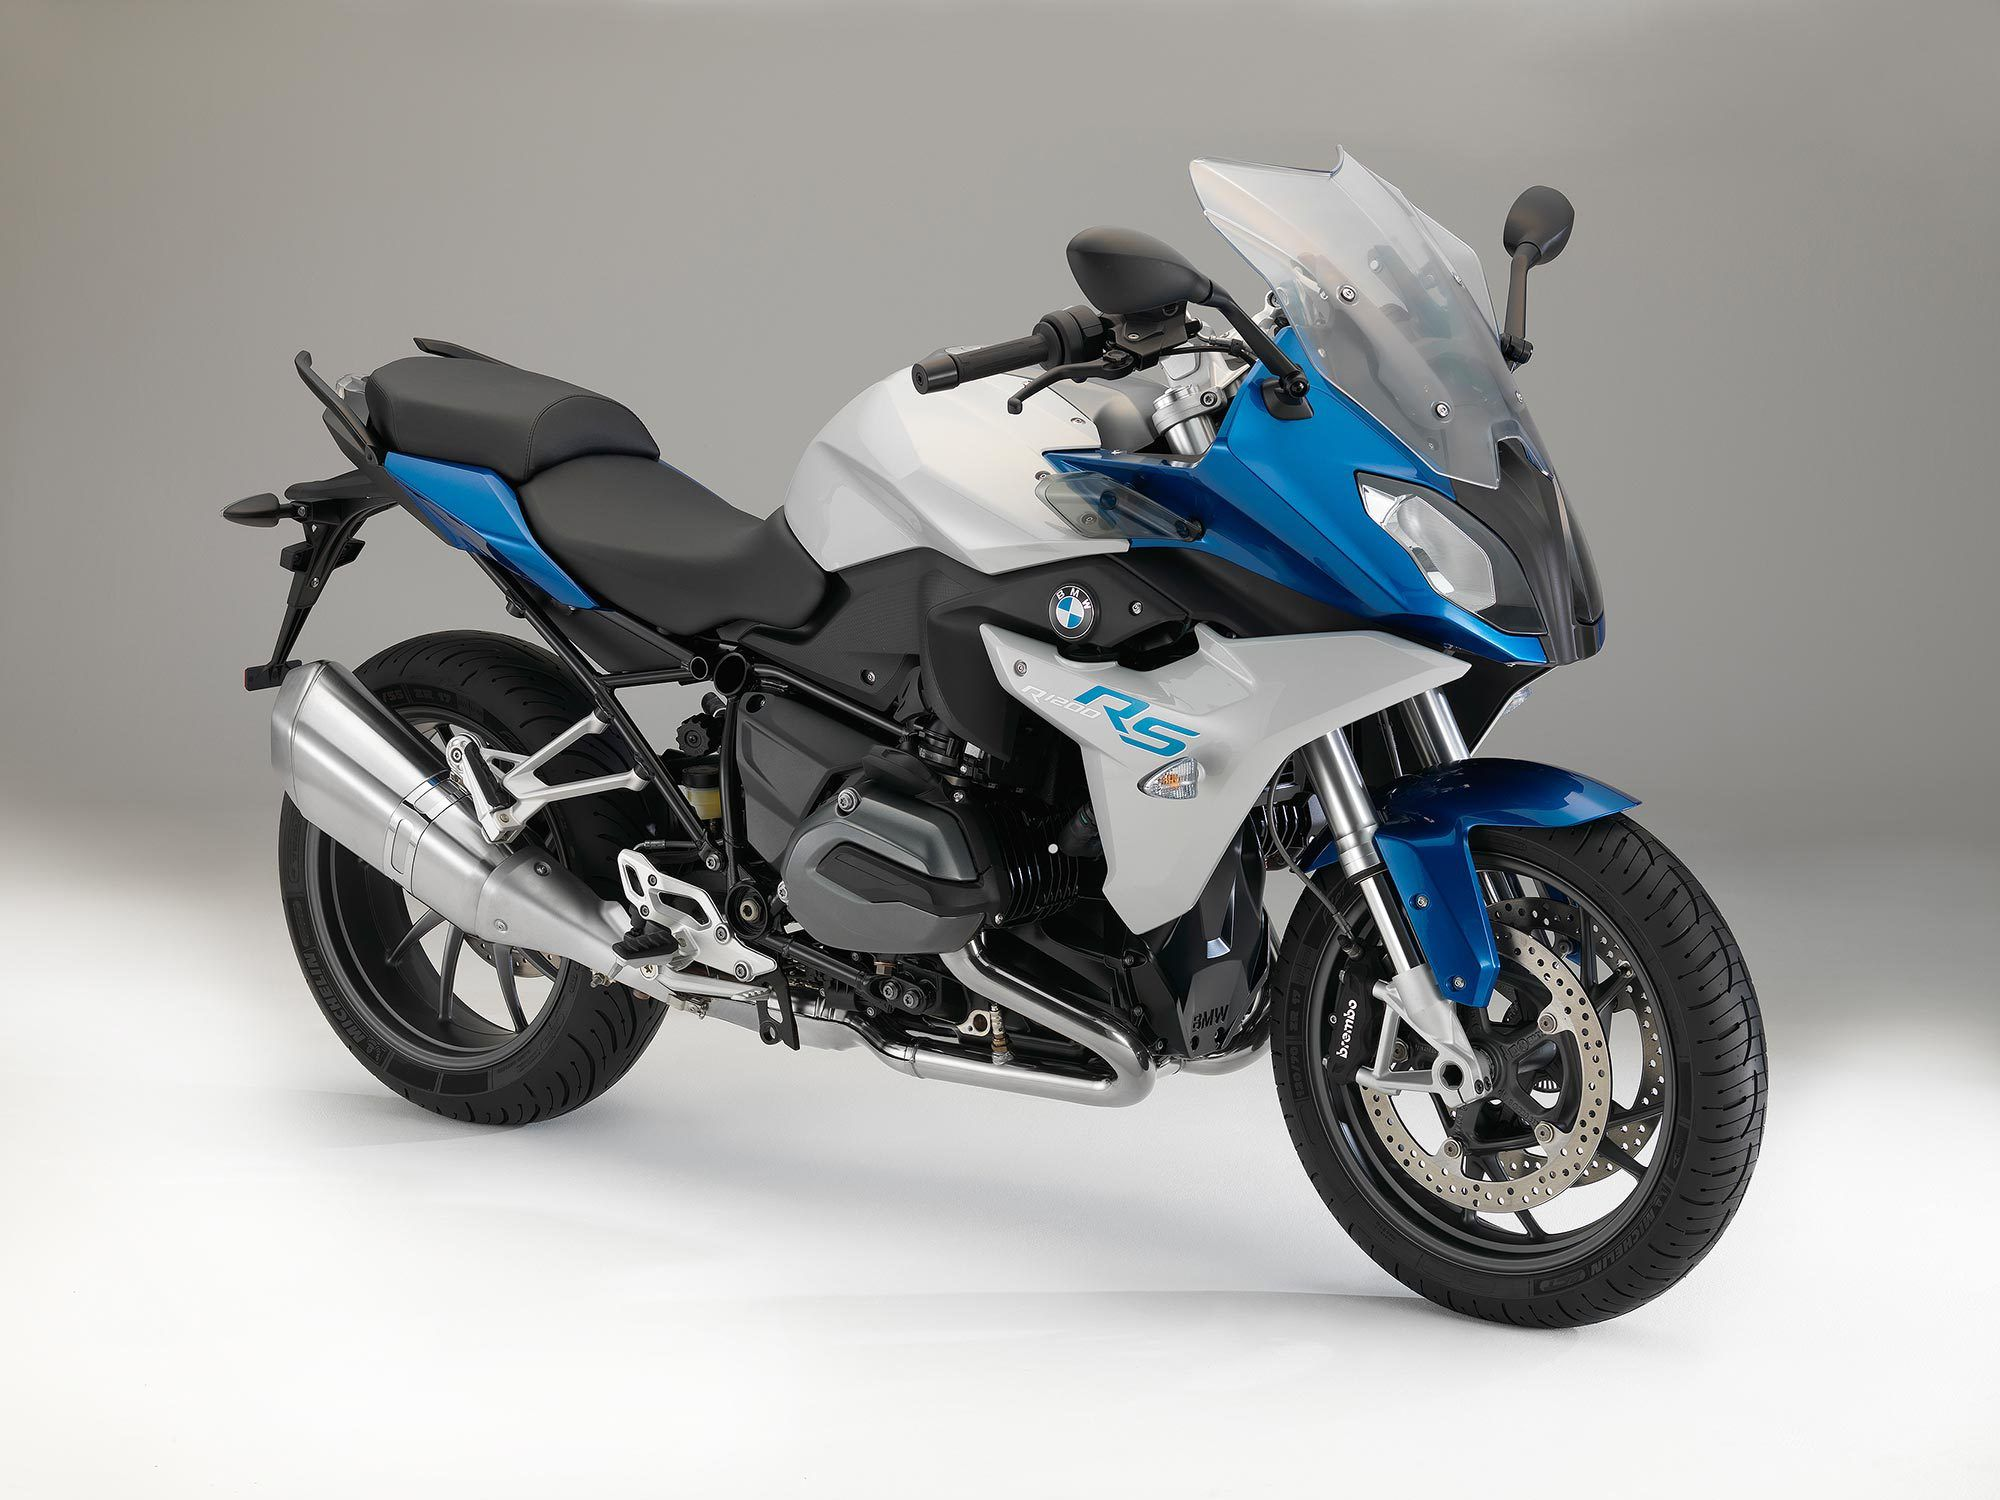 2015 Bmw R1200rs Welcome Back The Sport Tourer Met Afbeeldingen